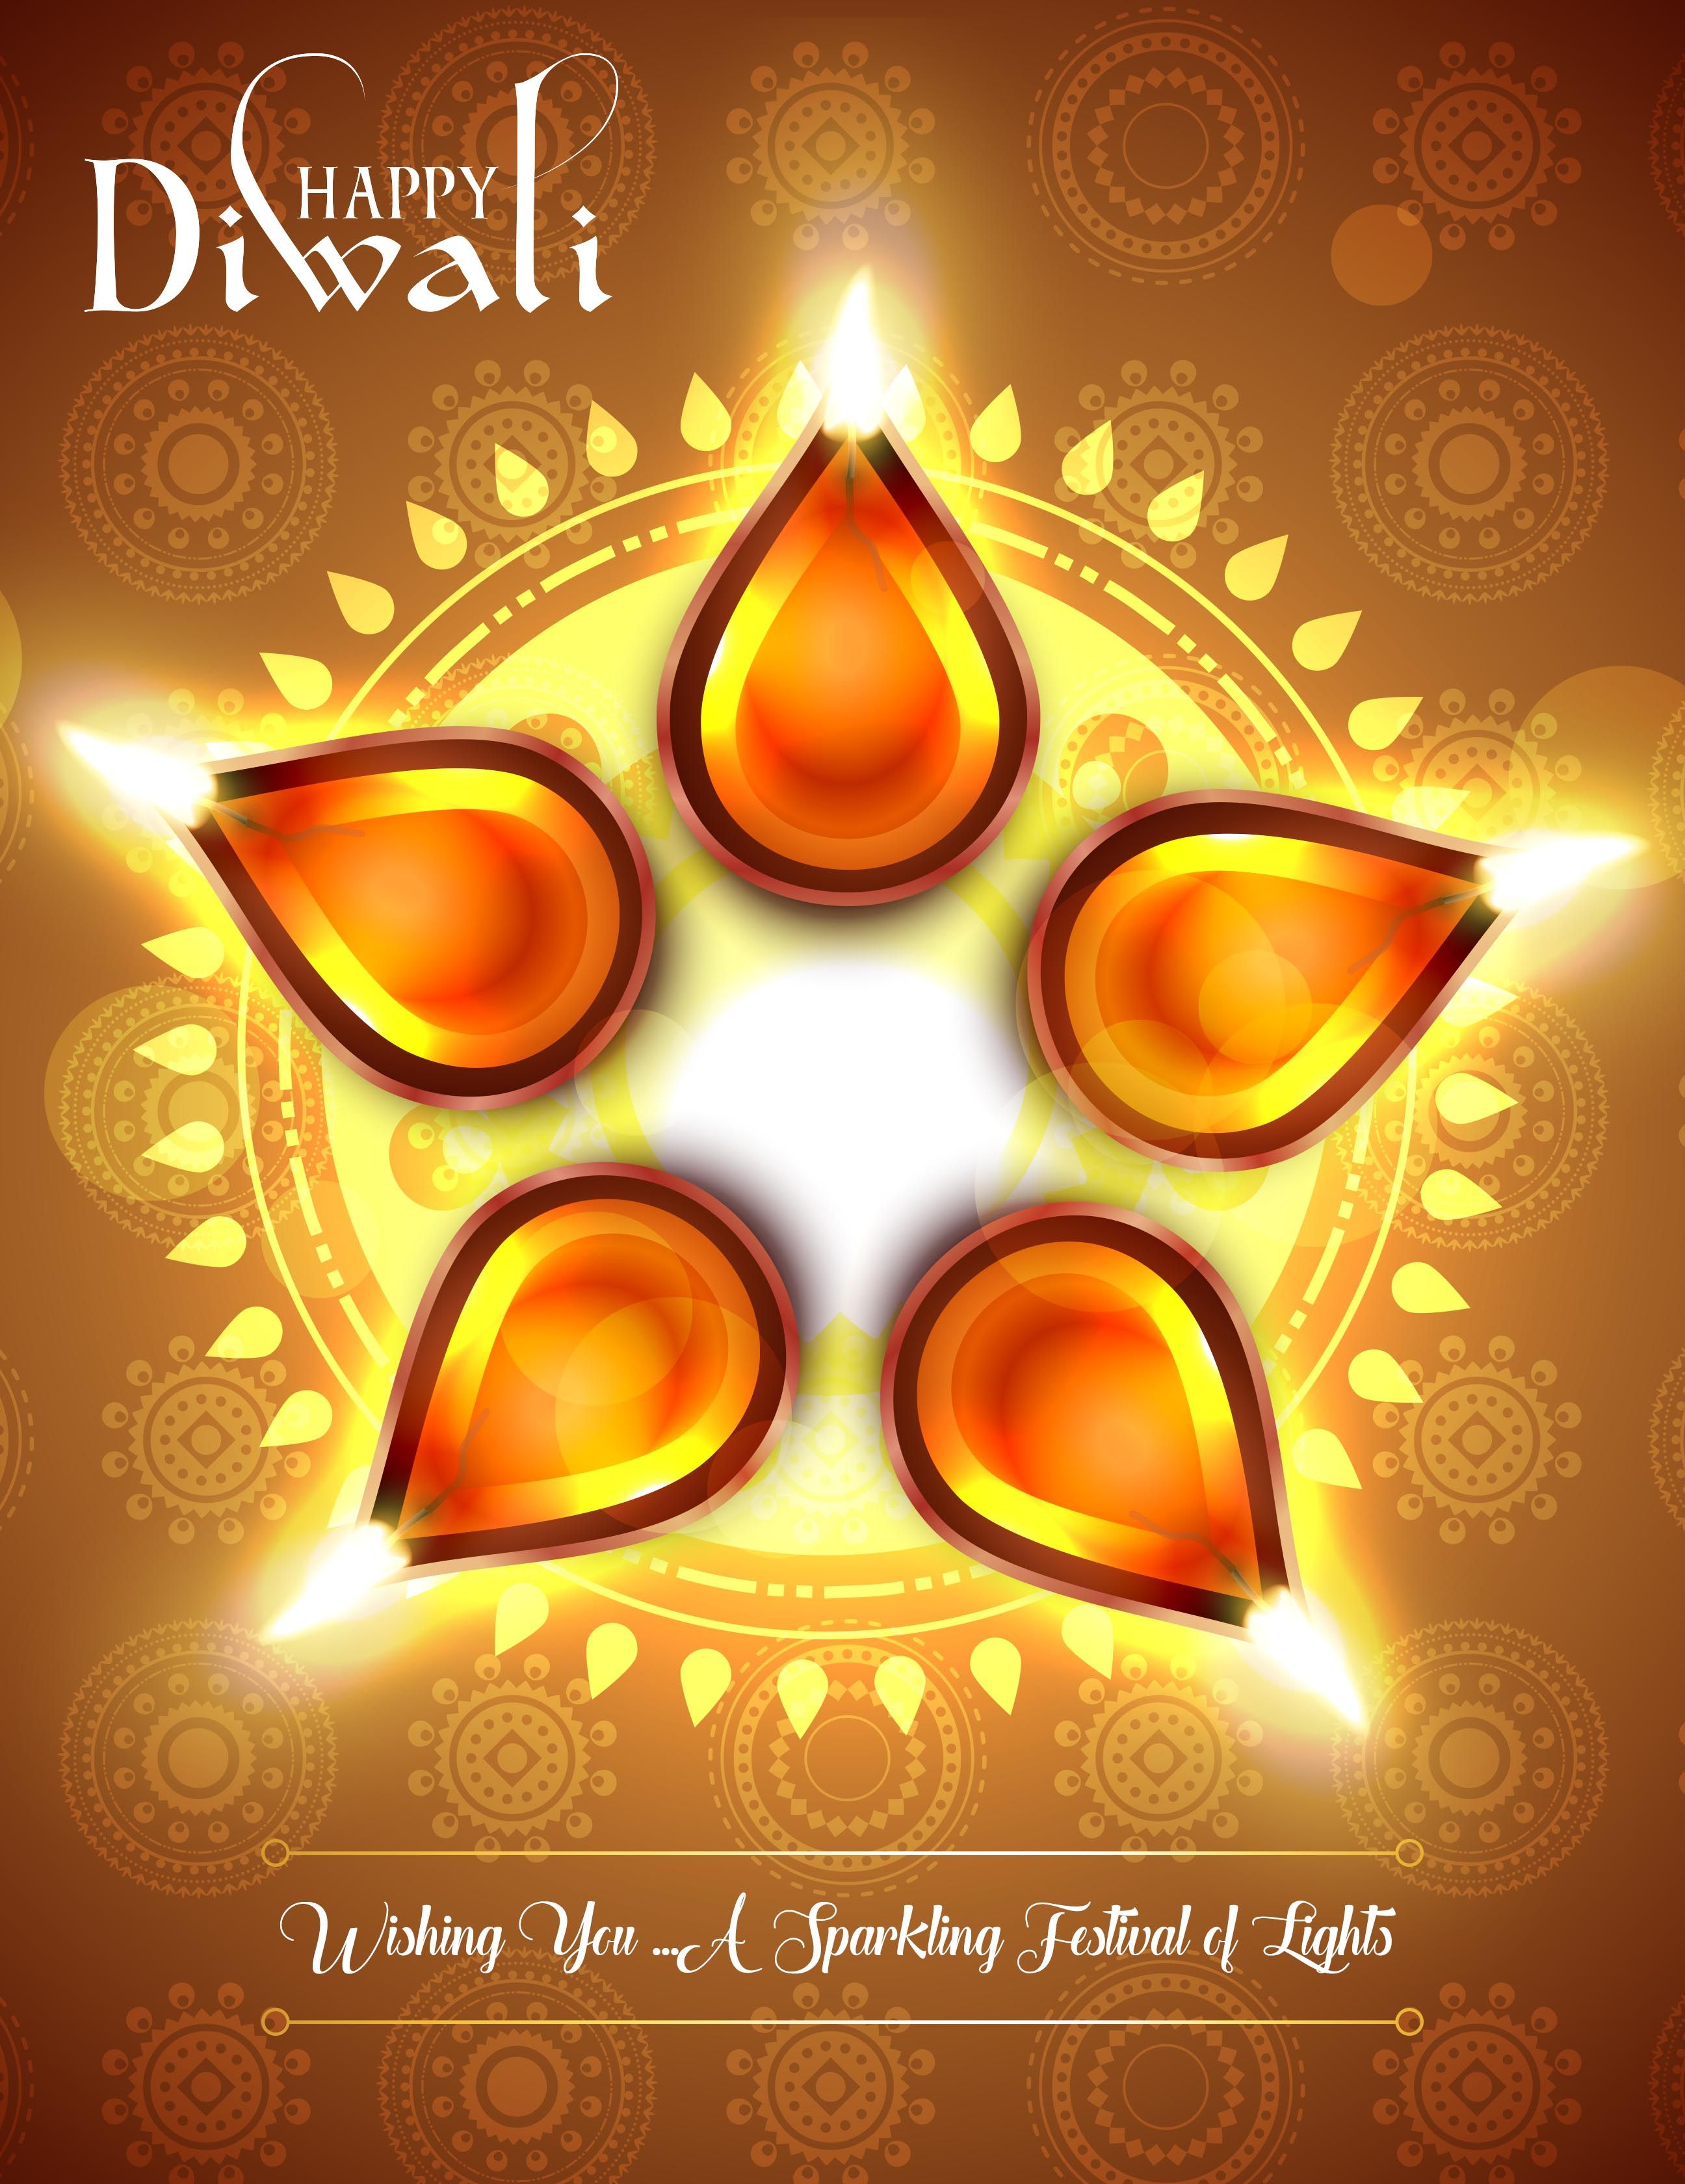 Diwali Wishes & Greetings for Clients, Employees, Boss & Corporate